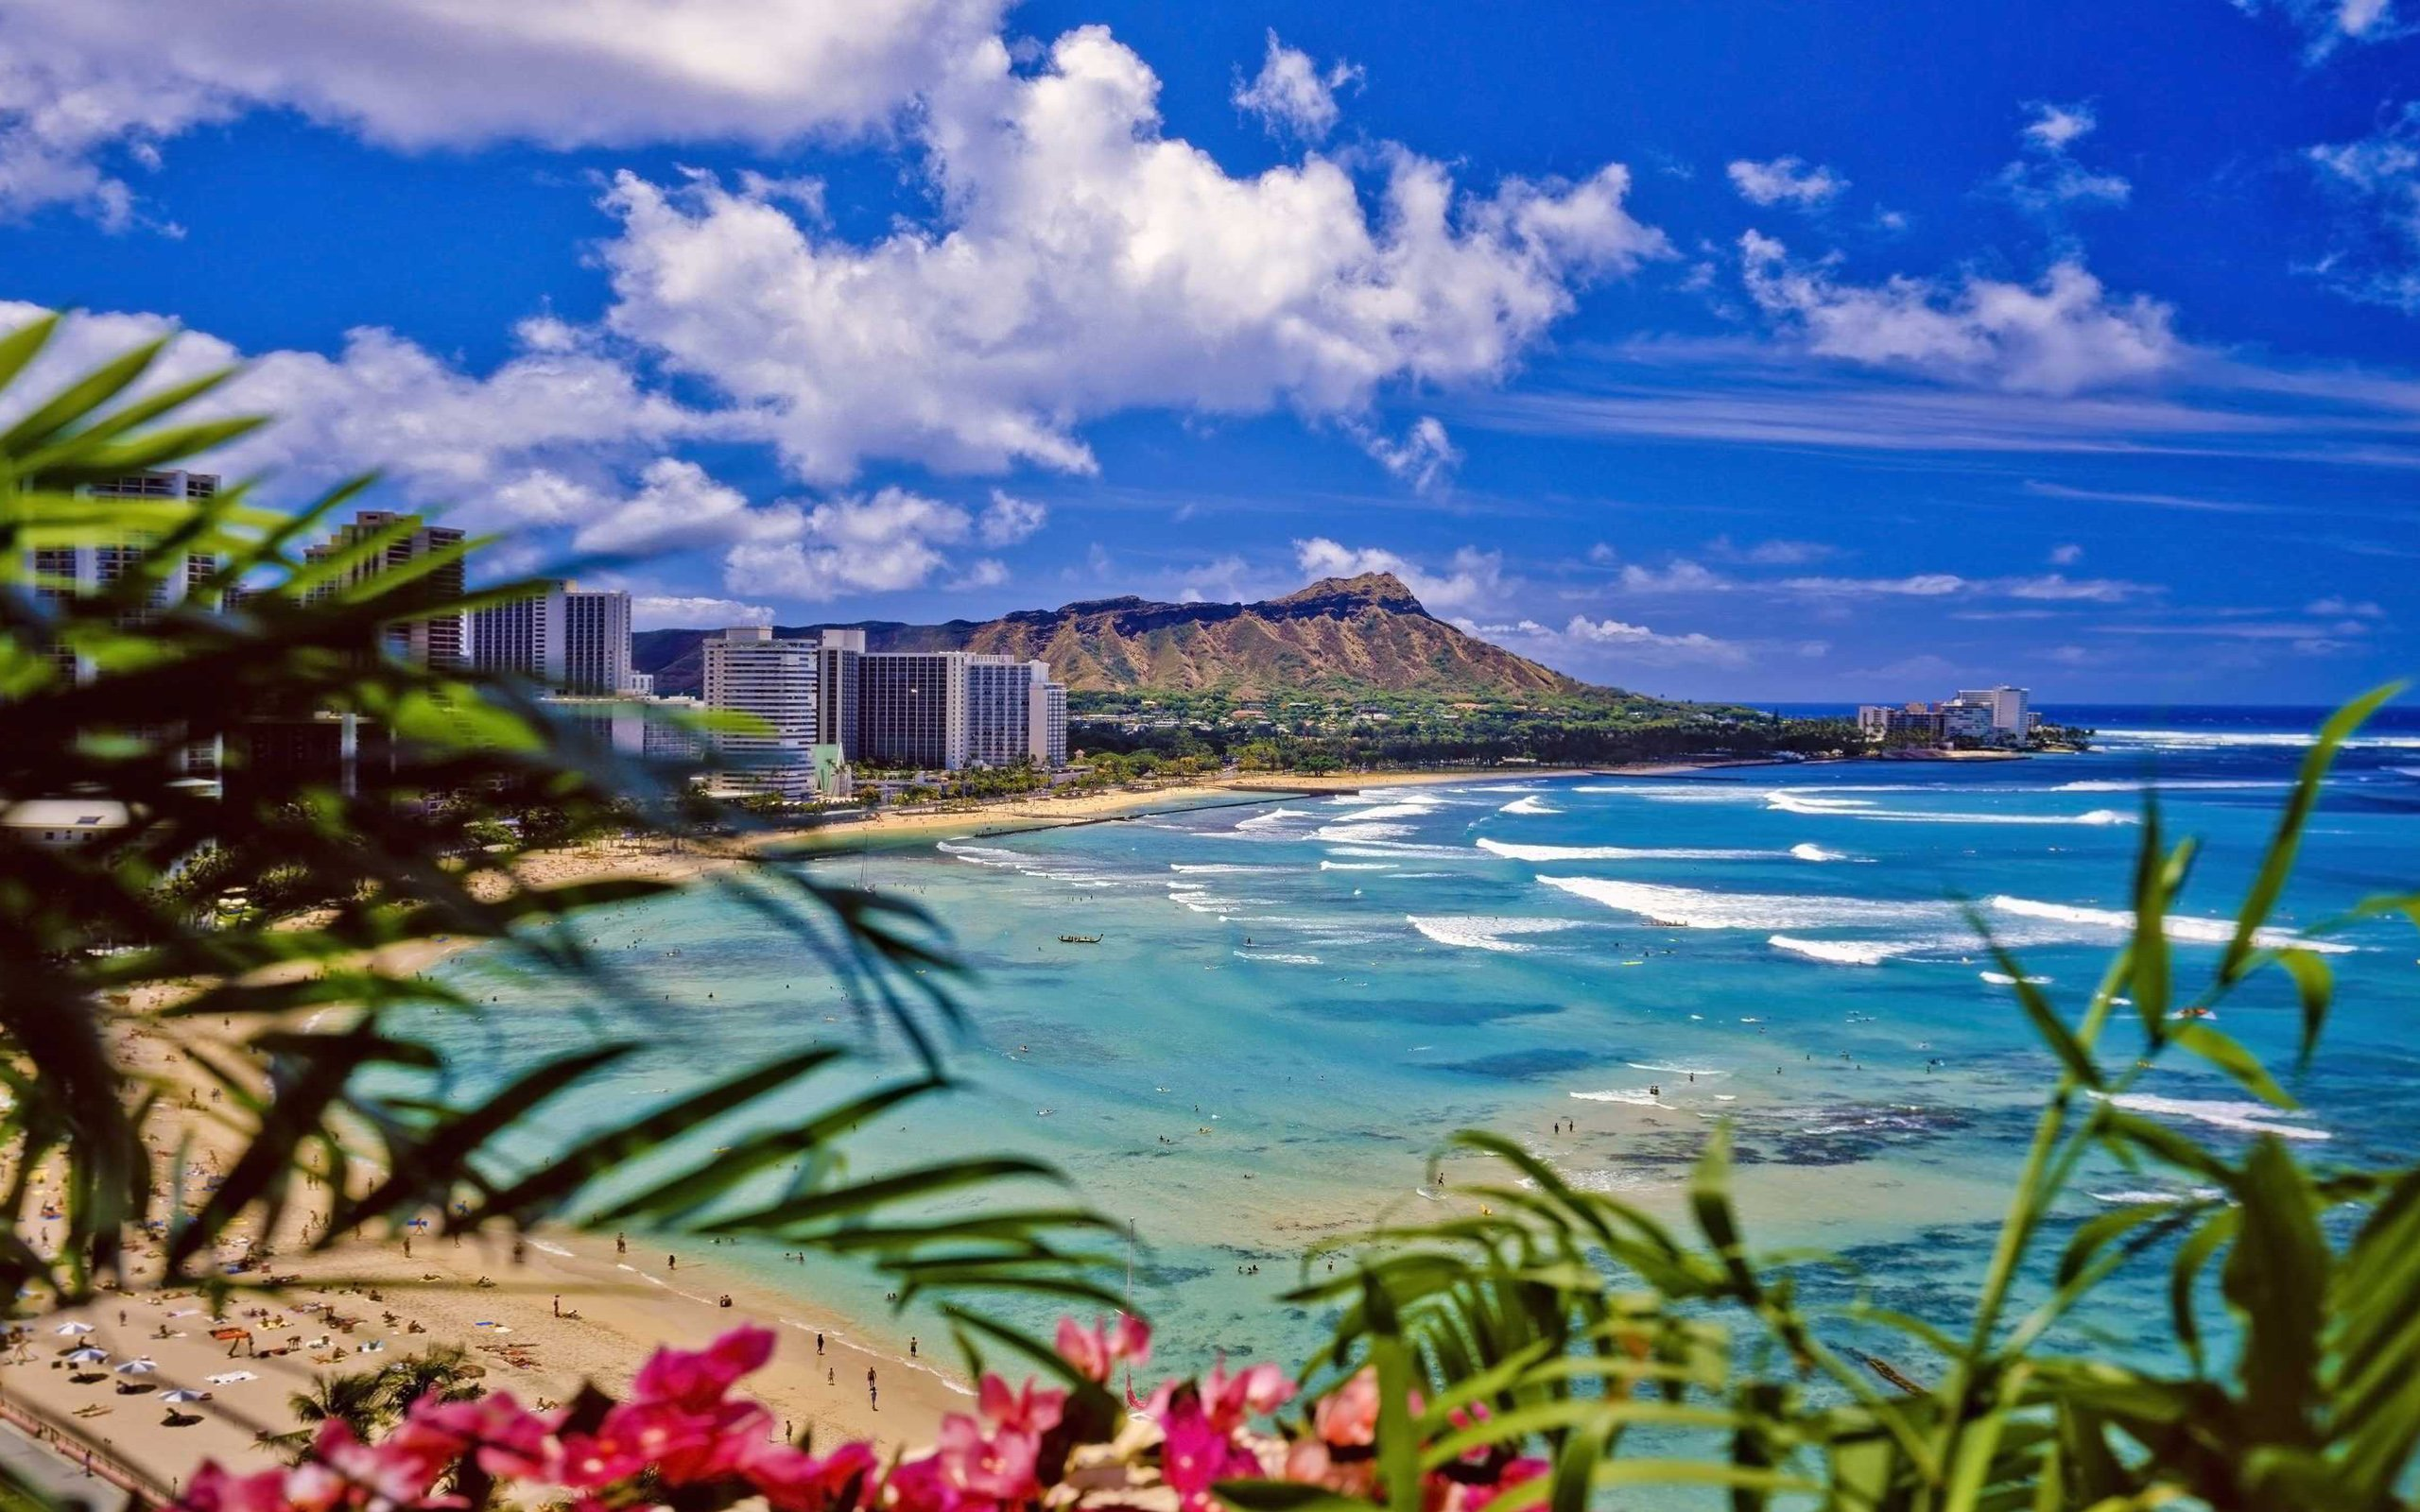 Waikiki Beach Oahu Desktop Wallpaper Hd 2560x1600 Wallpapers13com 2560x1600